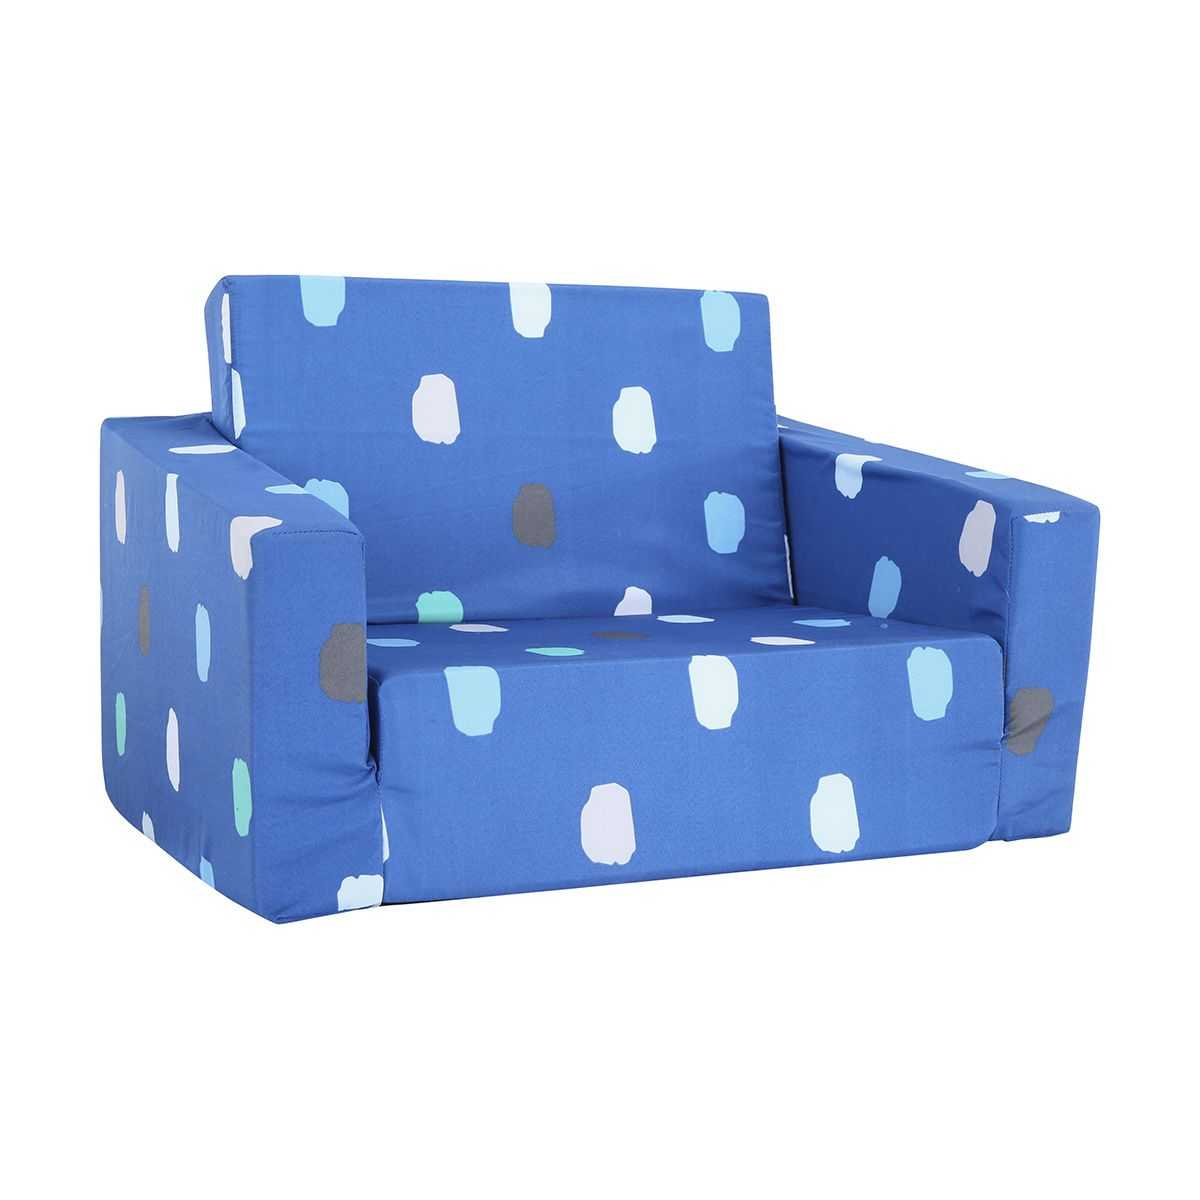 Flipout Sofa Splash Kmart Kids Table And Chairs Kids Play